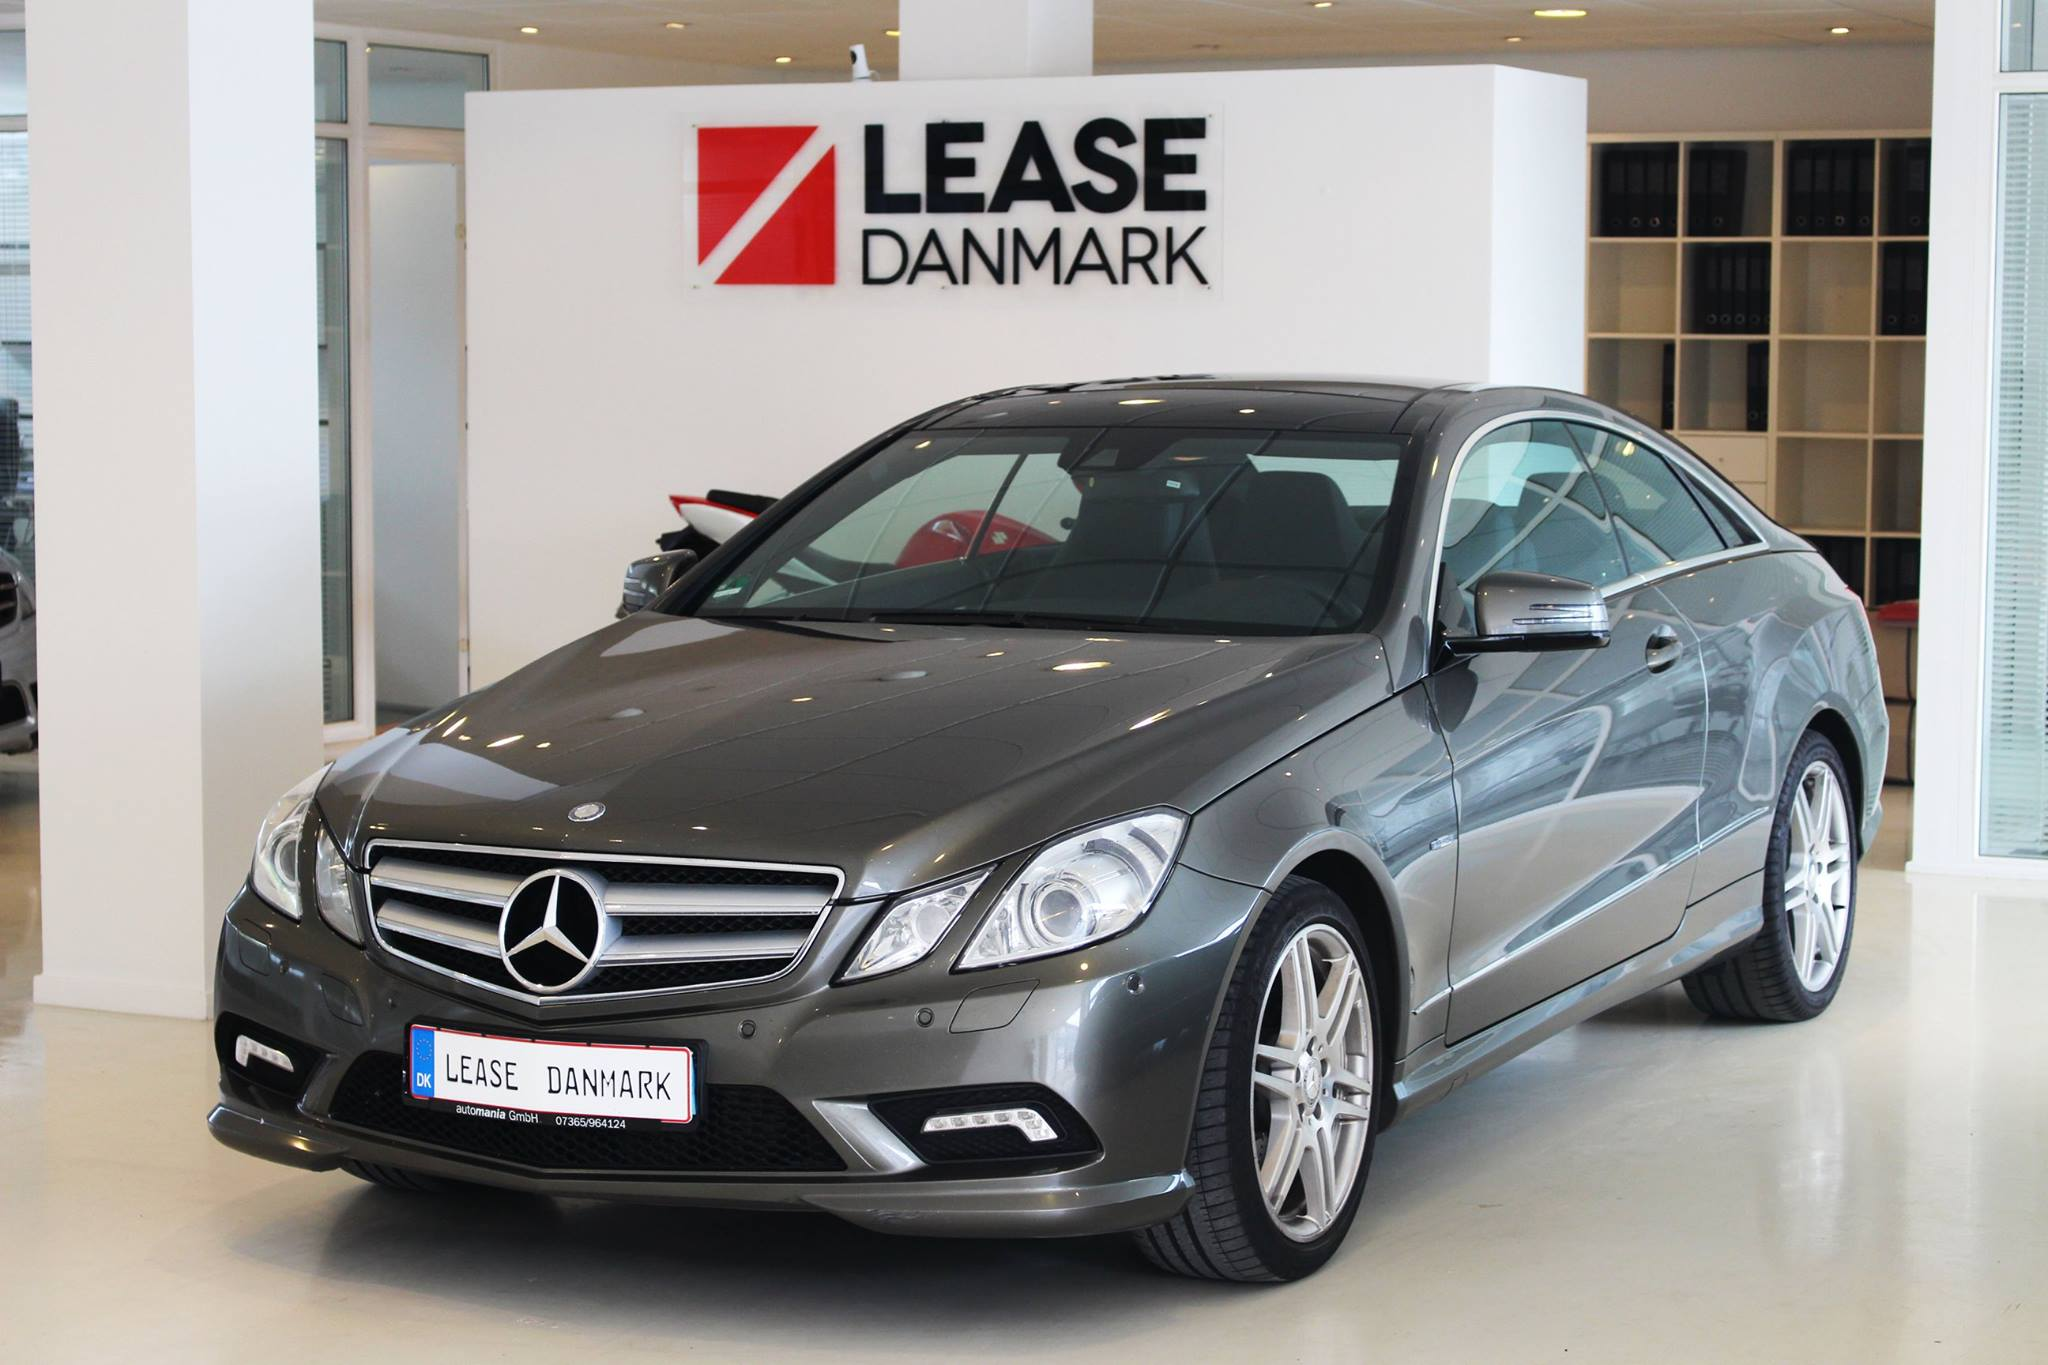 mercedes benz e350 cdi lease danmark. Black Bedroom Furniture Sets. Home Design Ideas